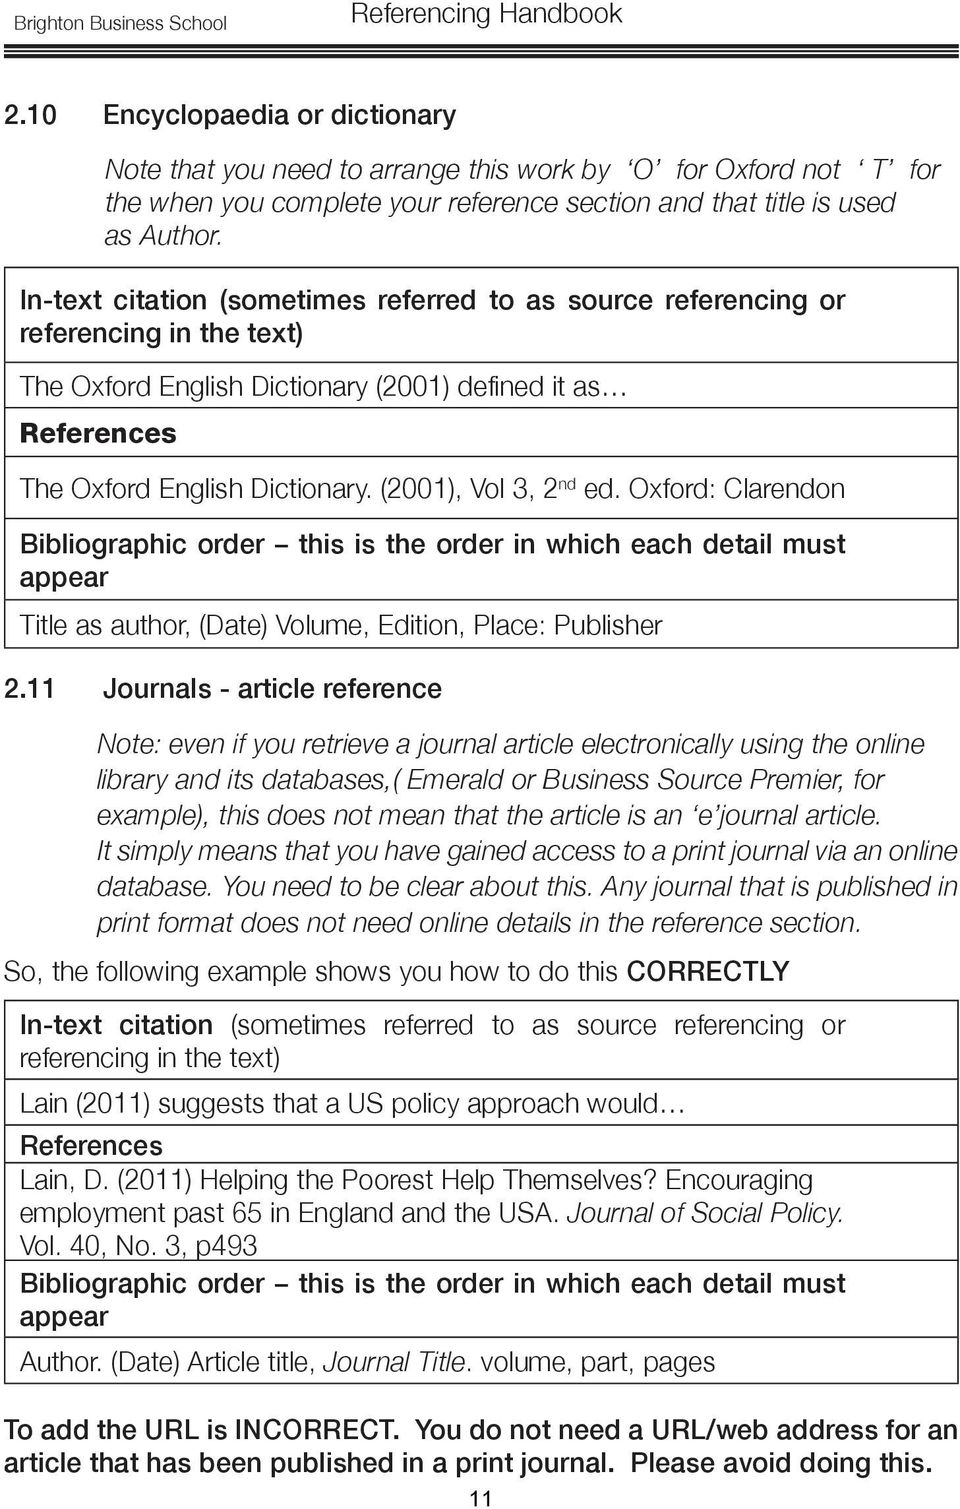 11 Journals - article reference Note: even if you retrieve a journal article electronically using the online library and its databases,( Emerald or Business Source Premier, for example), this does